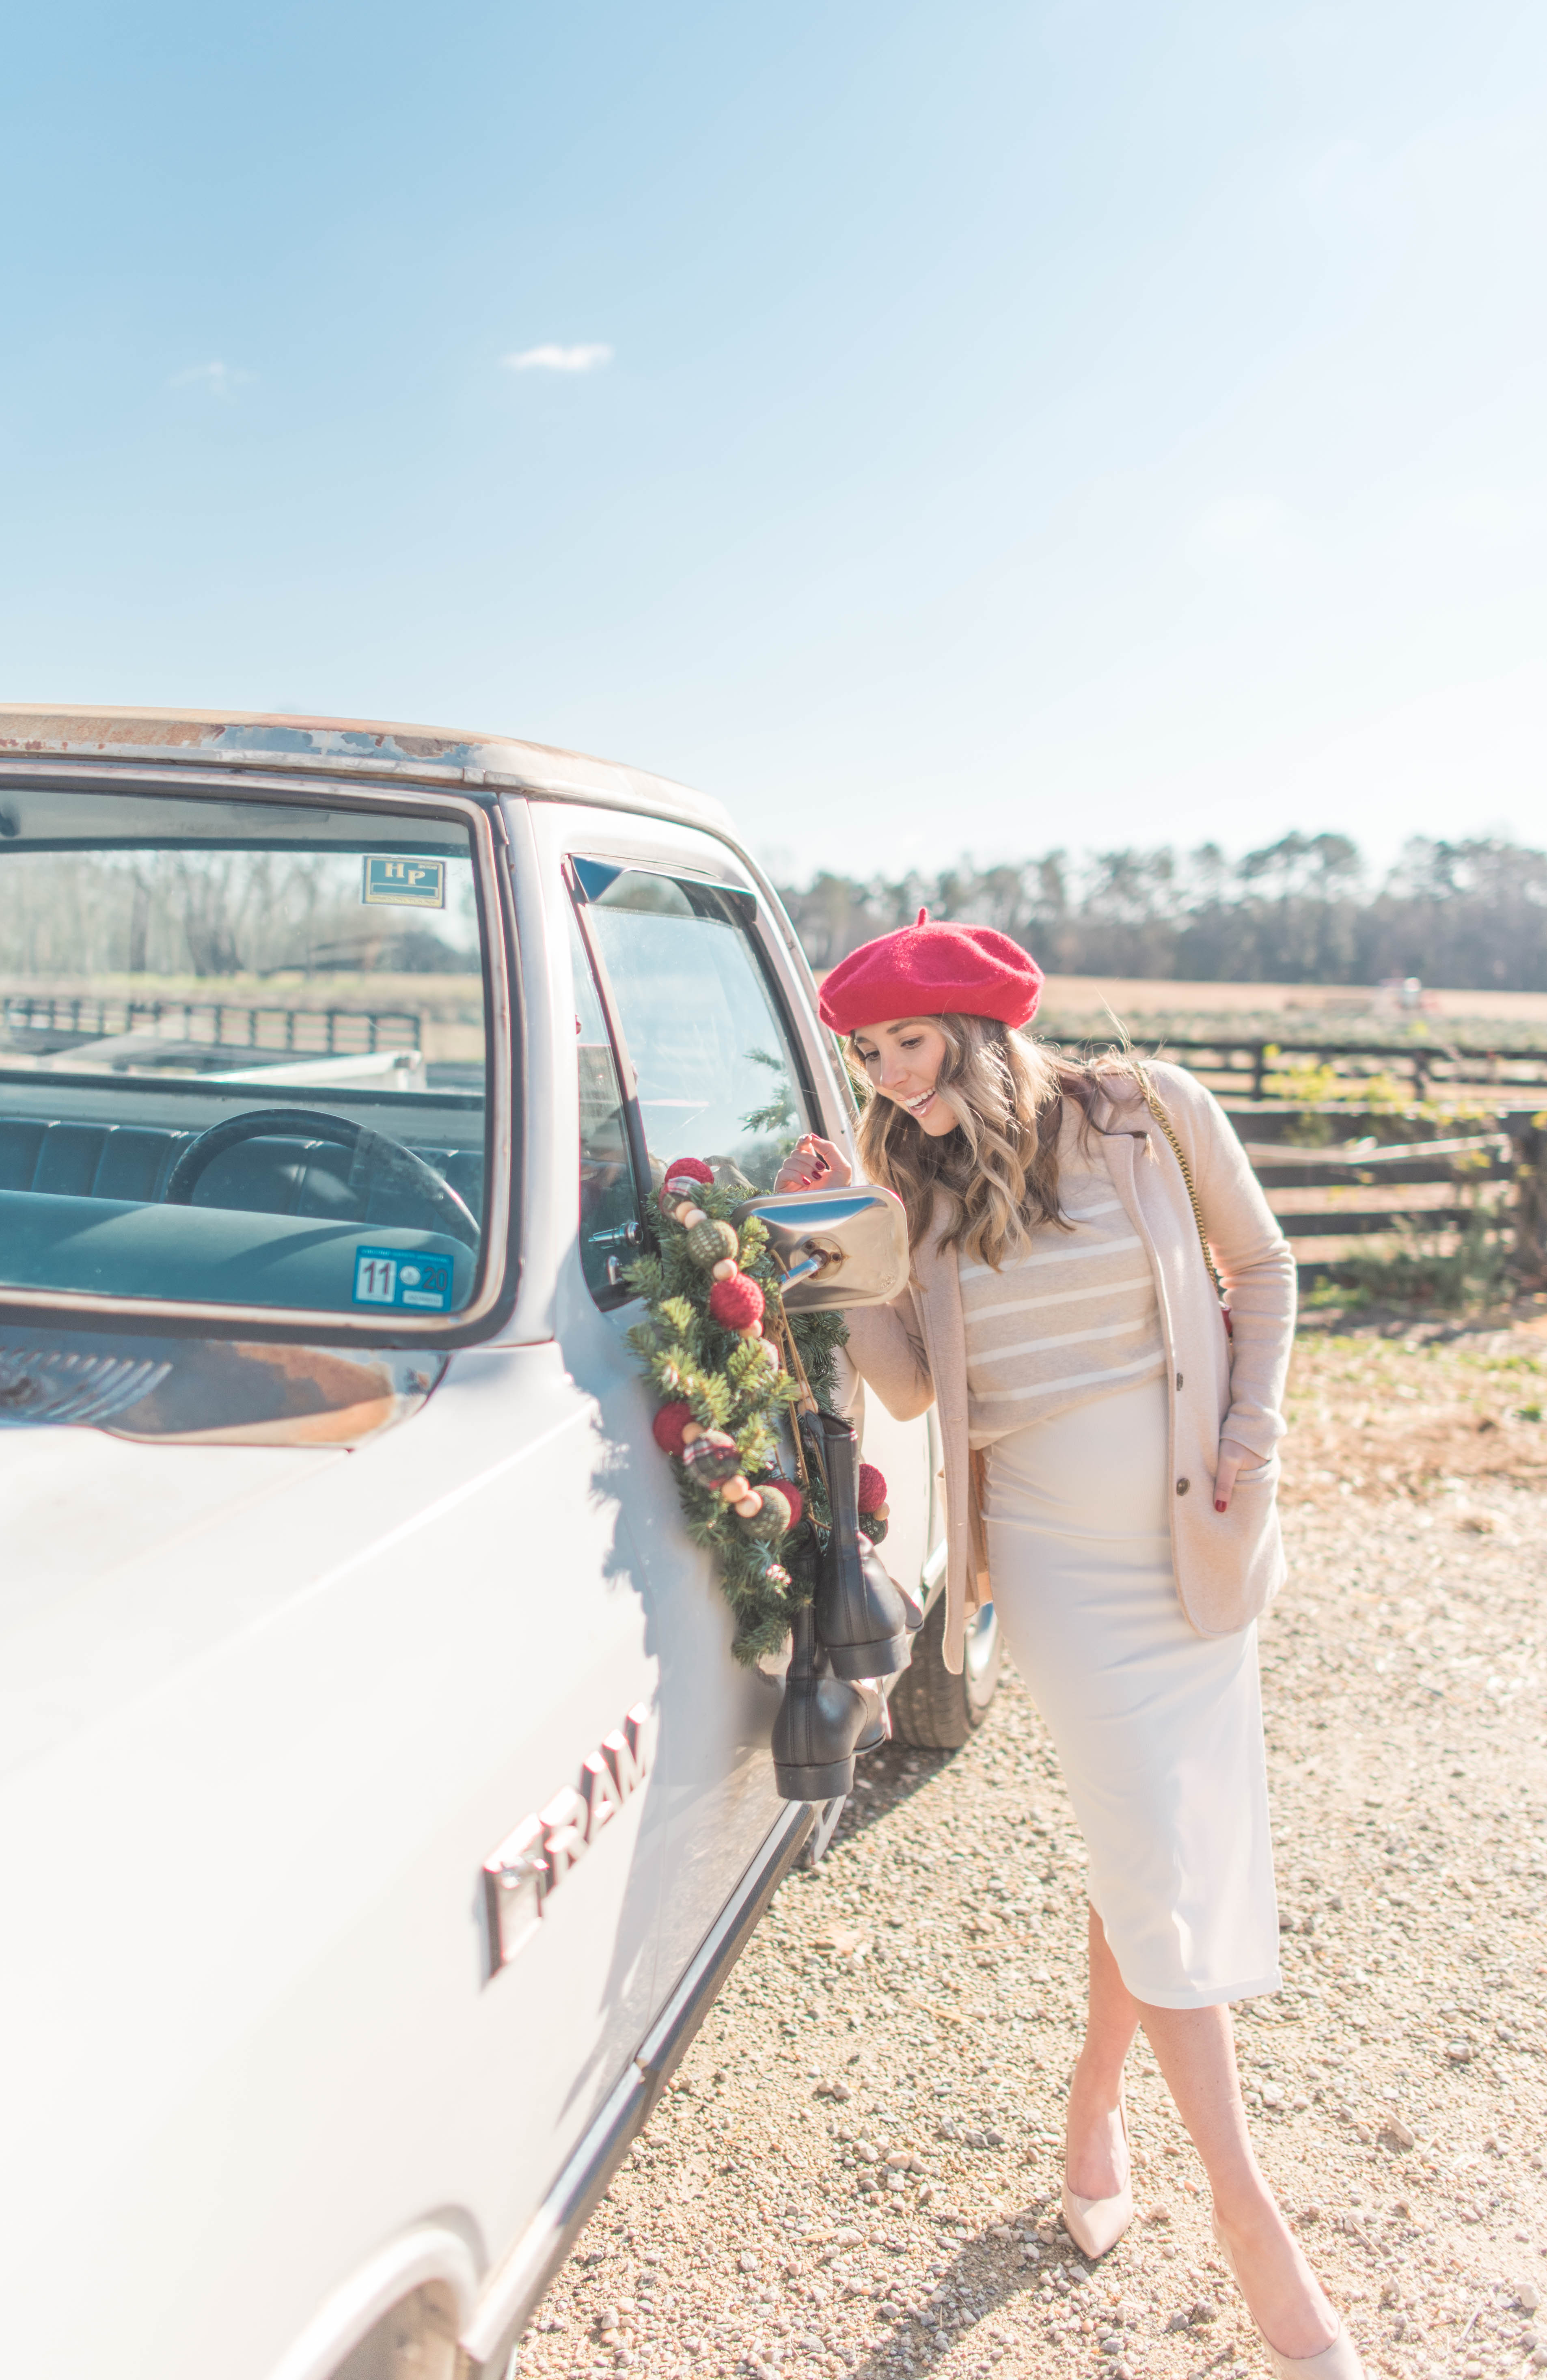 Anna Red Beret Christmas Truck Sweethaven Lavender Farm